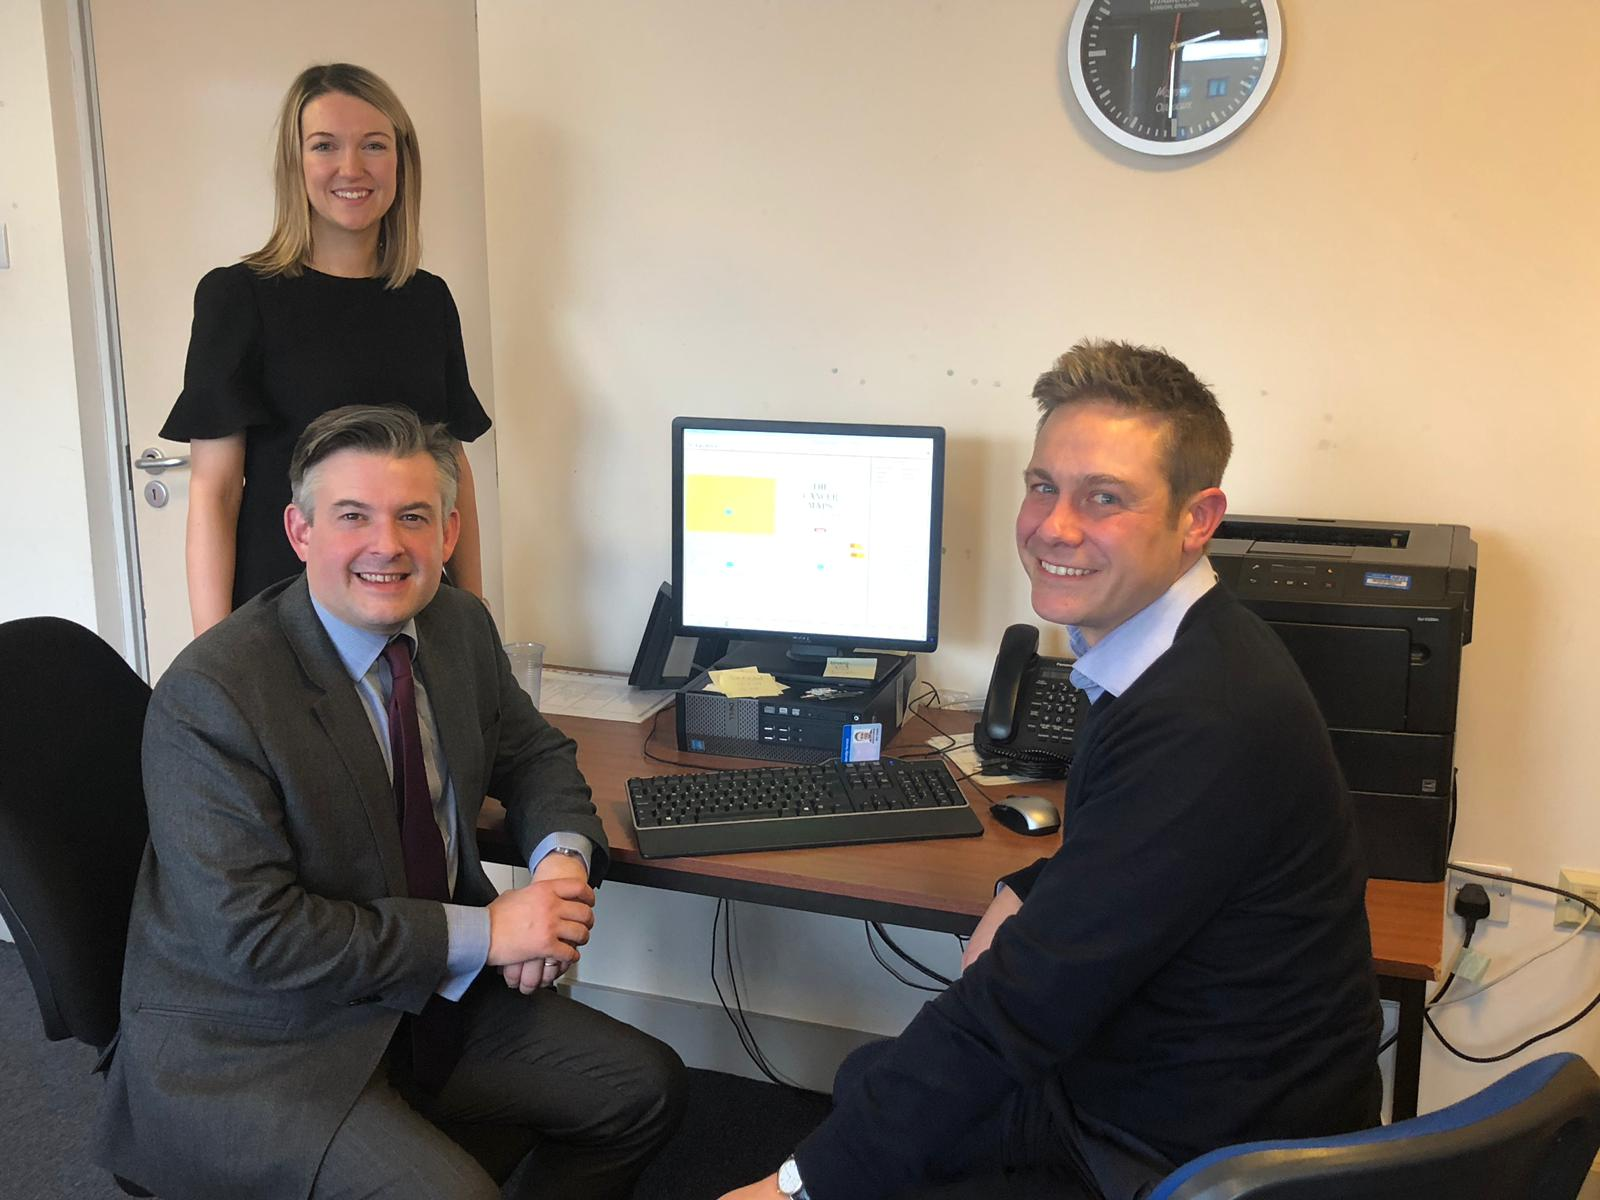 Jon visits Woodbrook Medical Centre in Loughborough to discuss cancer maps diagnostic tool with its inventor Dr Ben Noble - Friday January 18 2019